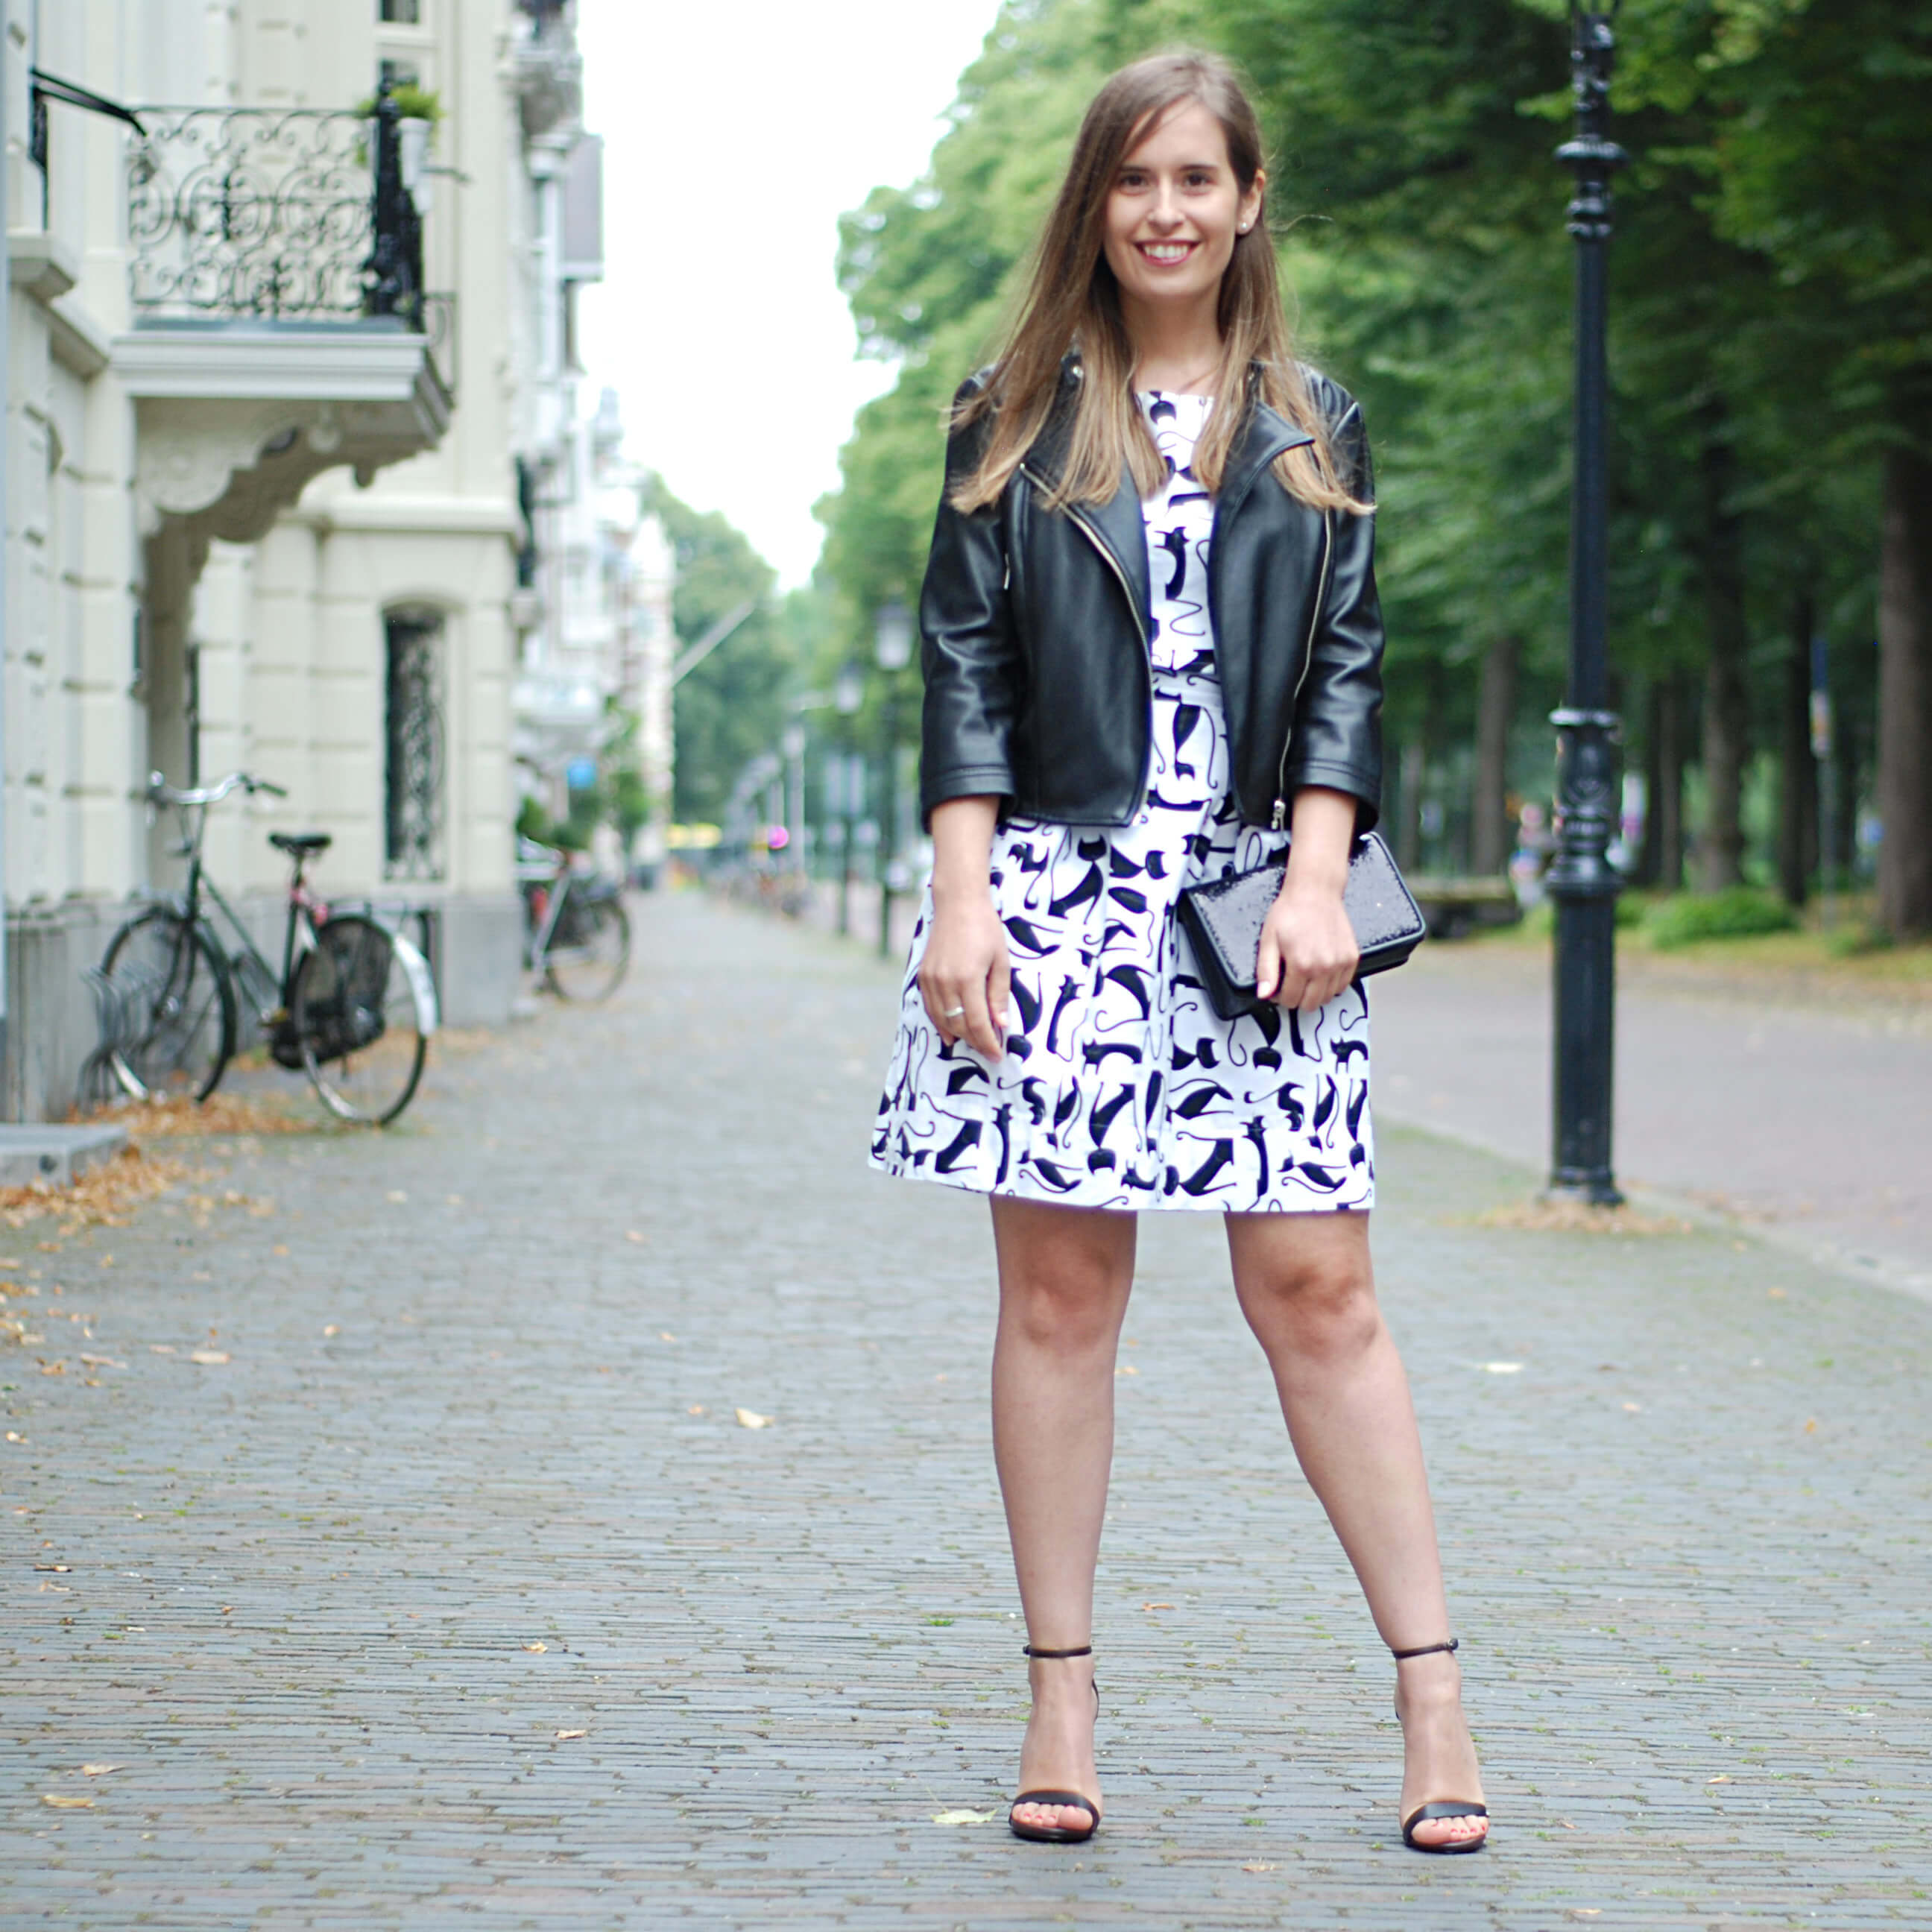 cats_fabric_outfit